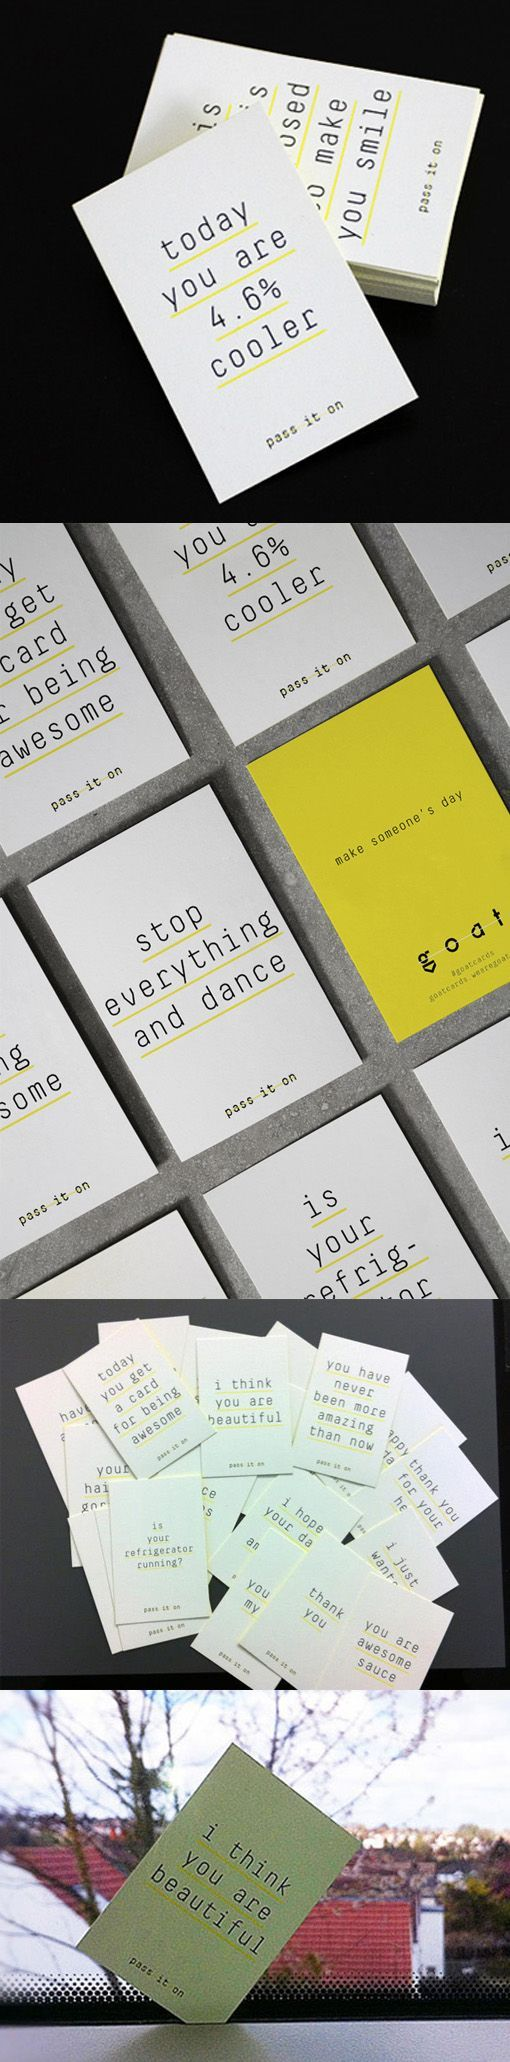 104 Best Creative Business Cards Ideas And Templates Images On